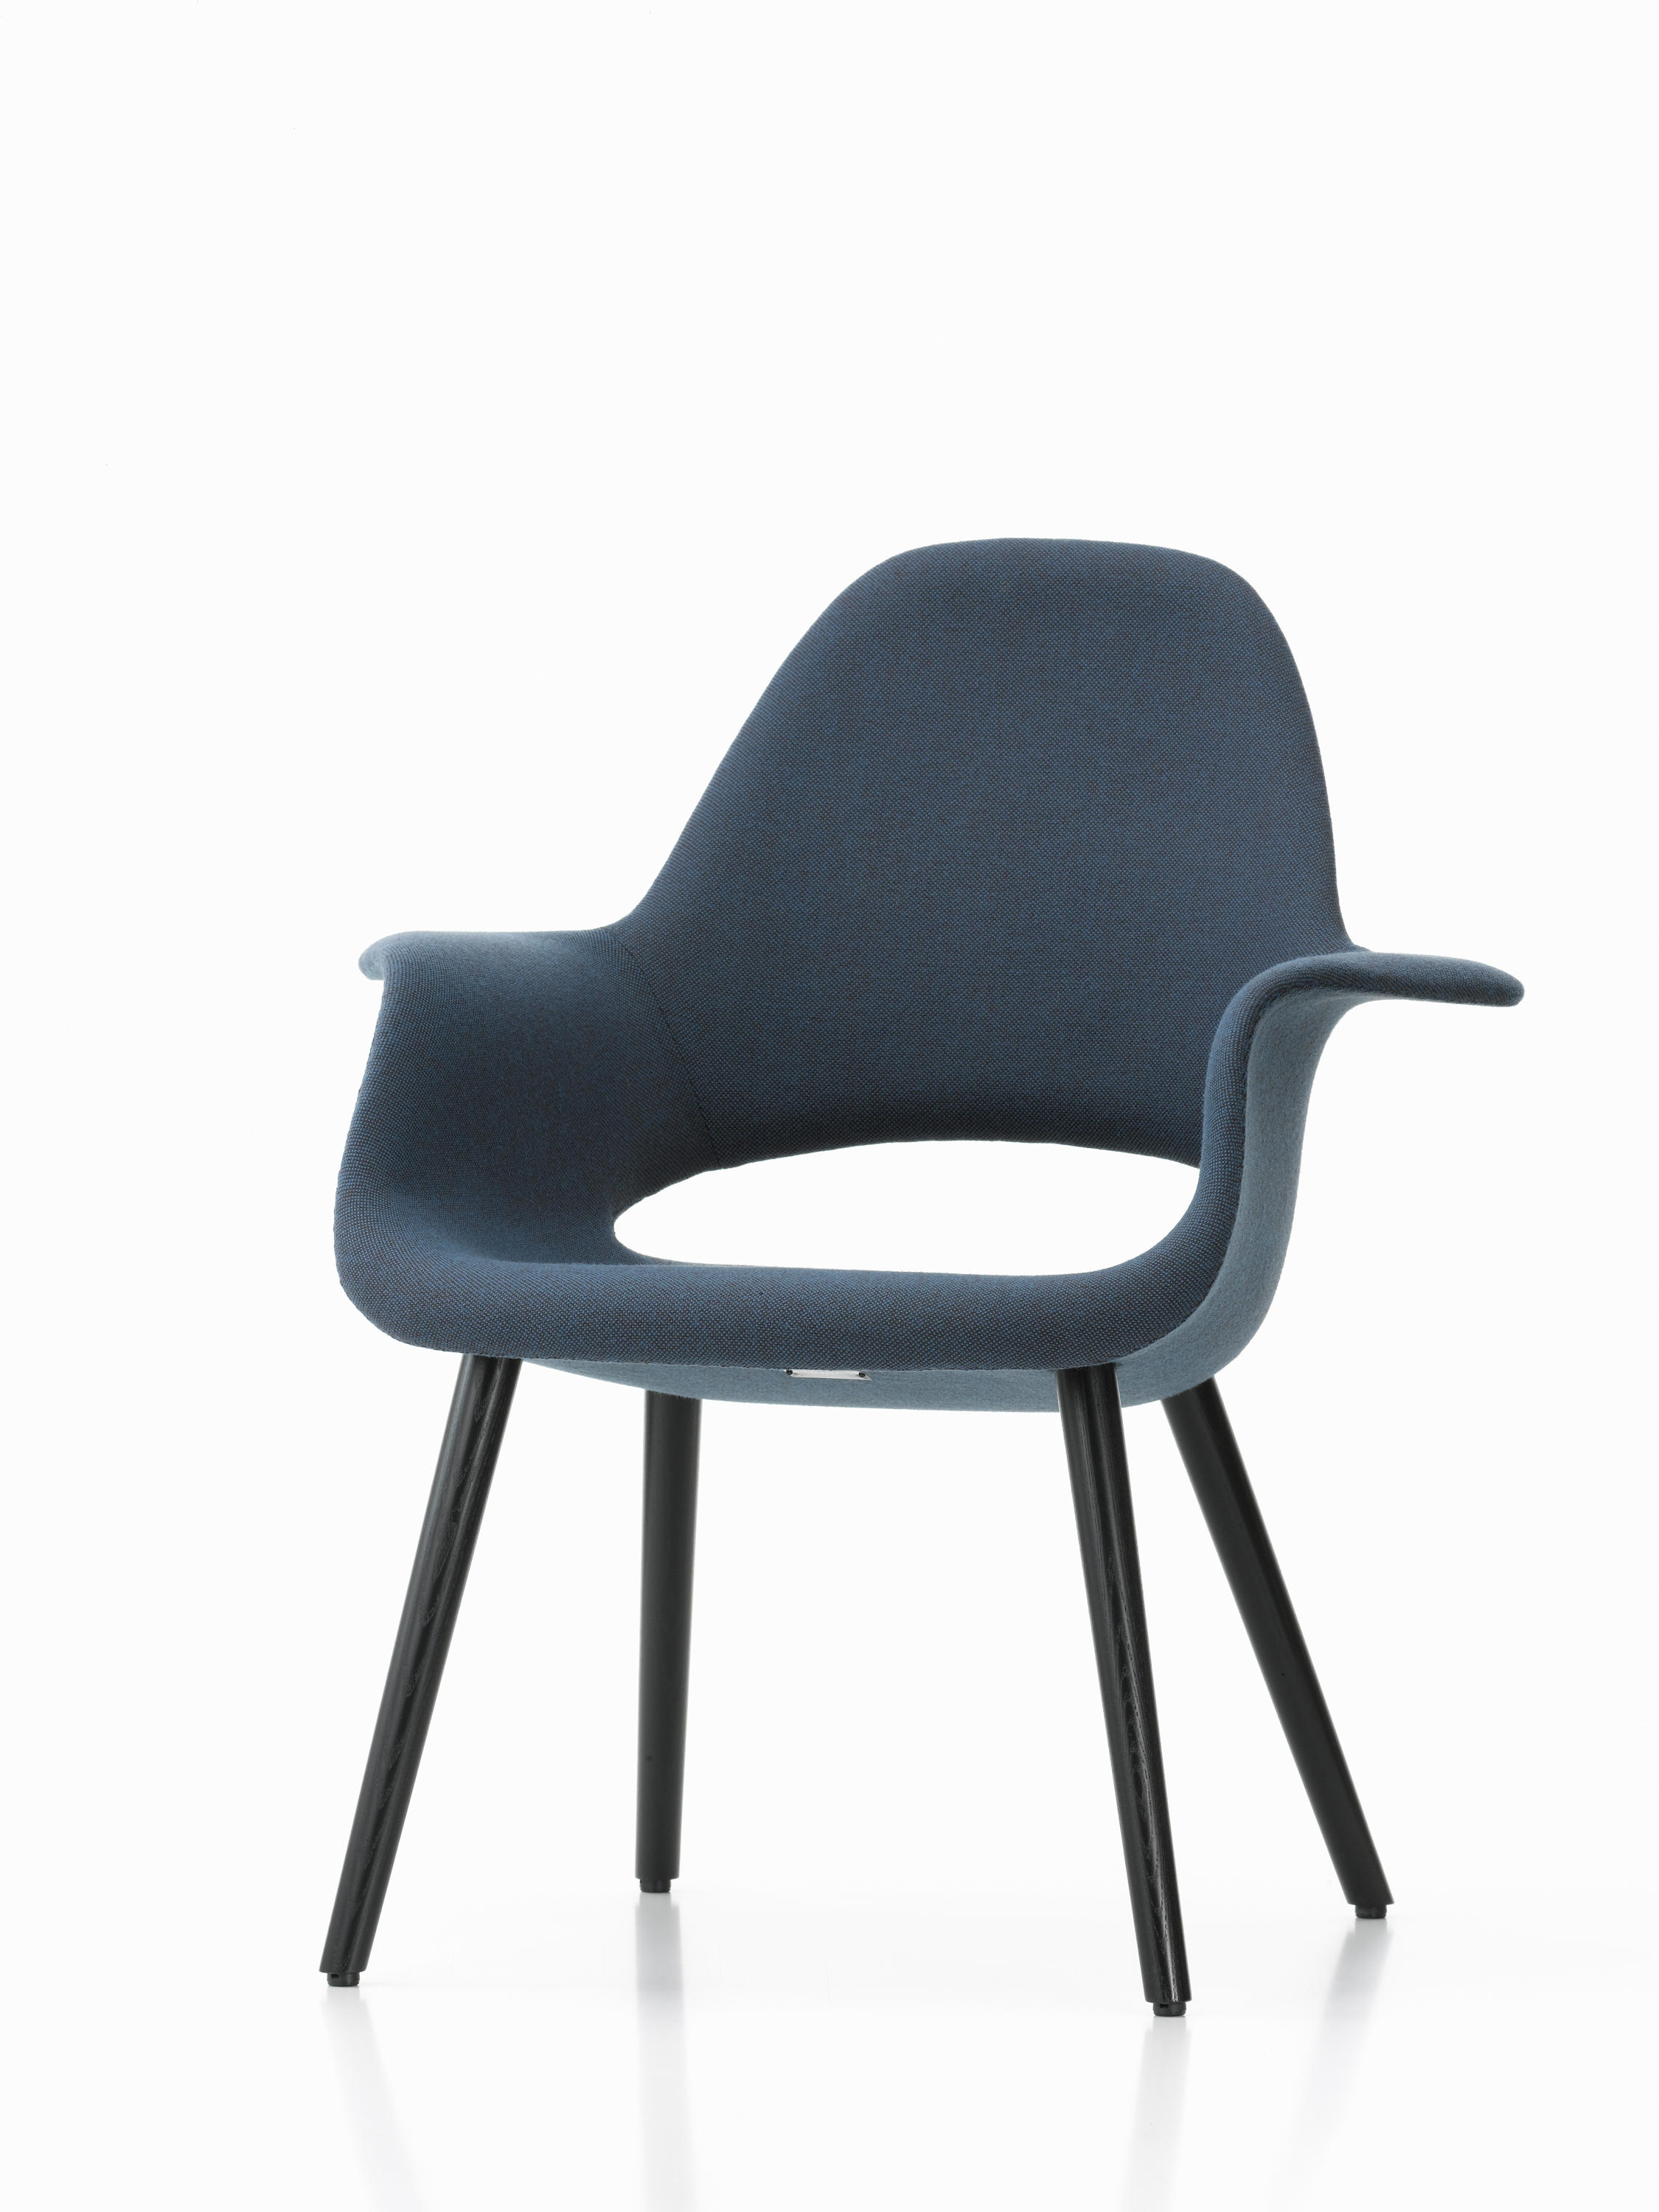 organic chair sillas de visita de vitra architonic. Black Bedroom Furniture Sets. Home Design Ideas